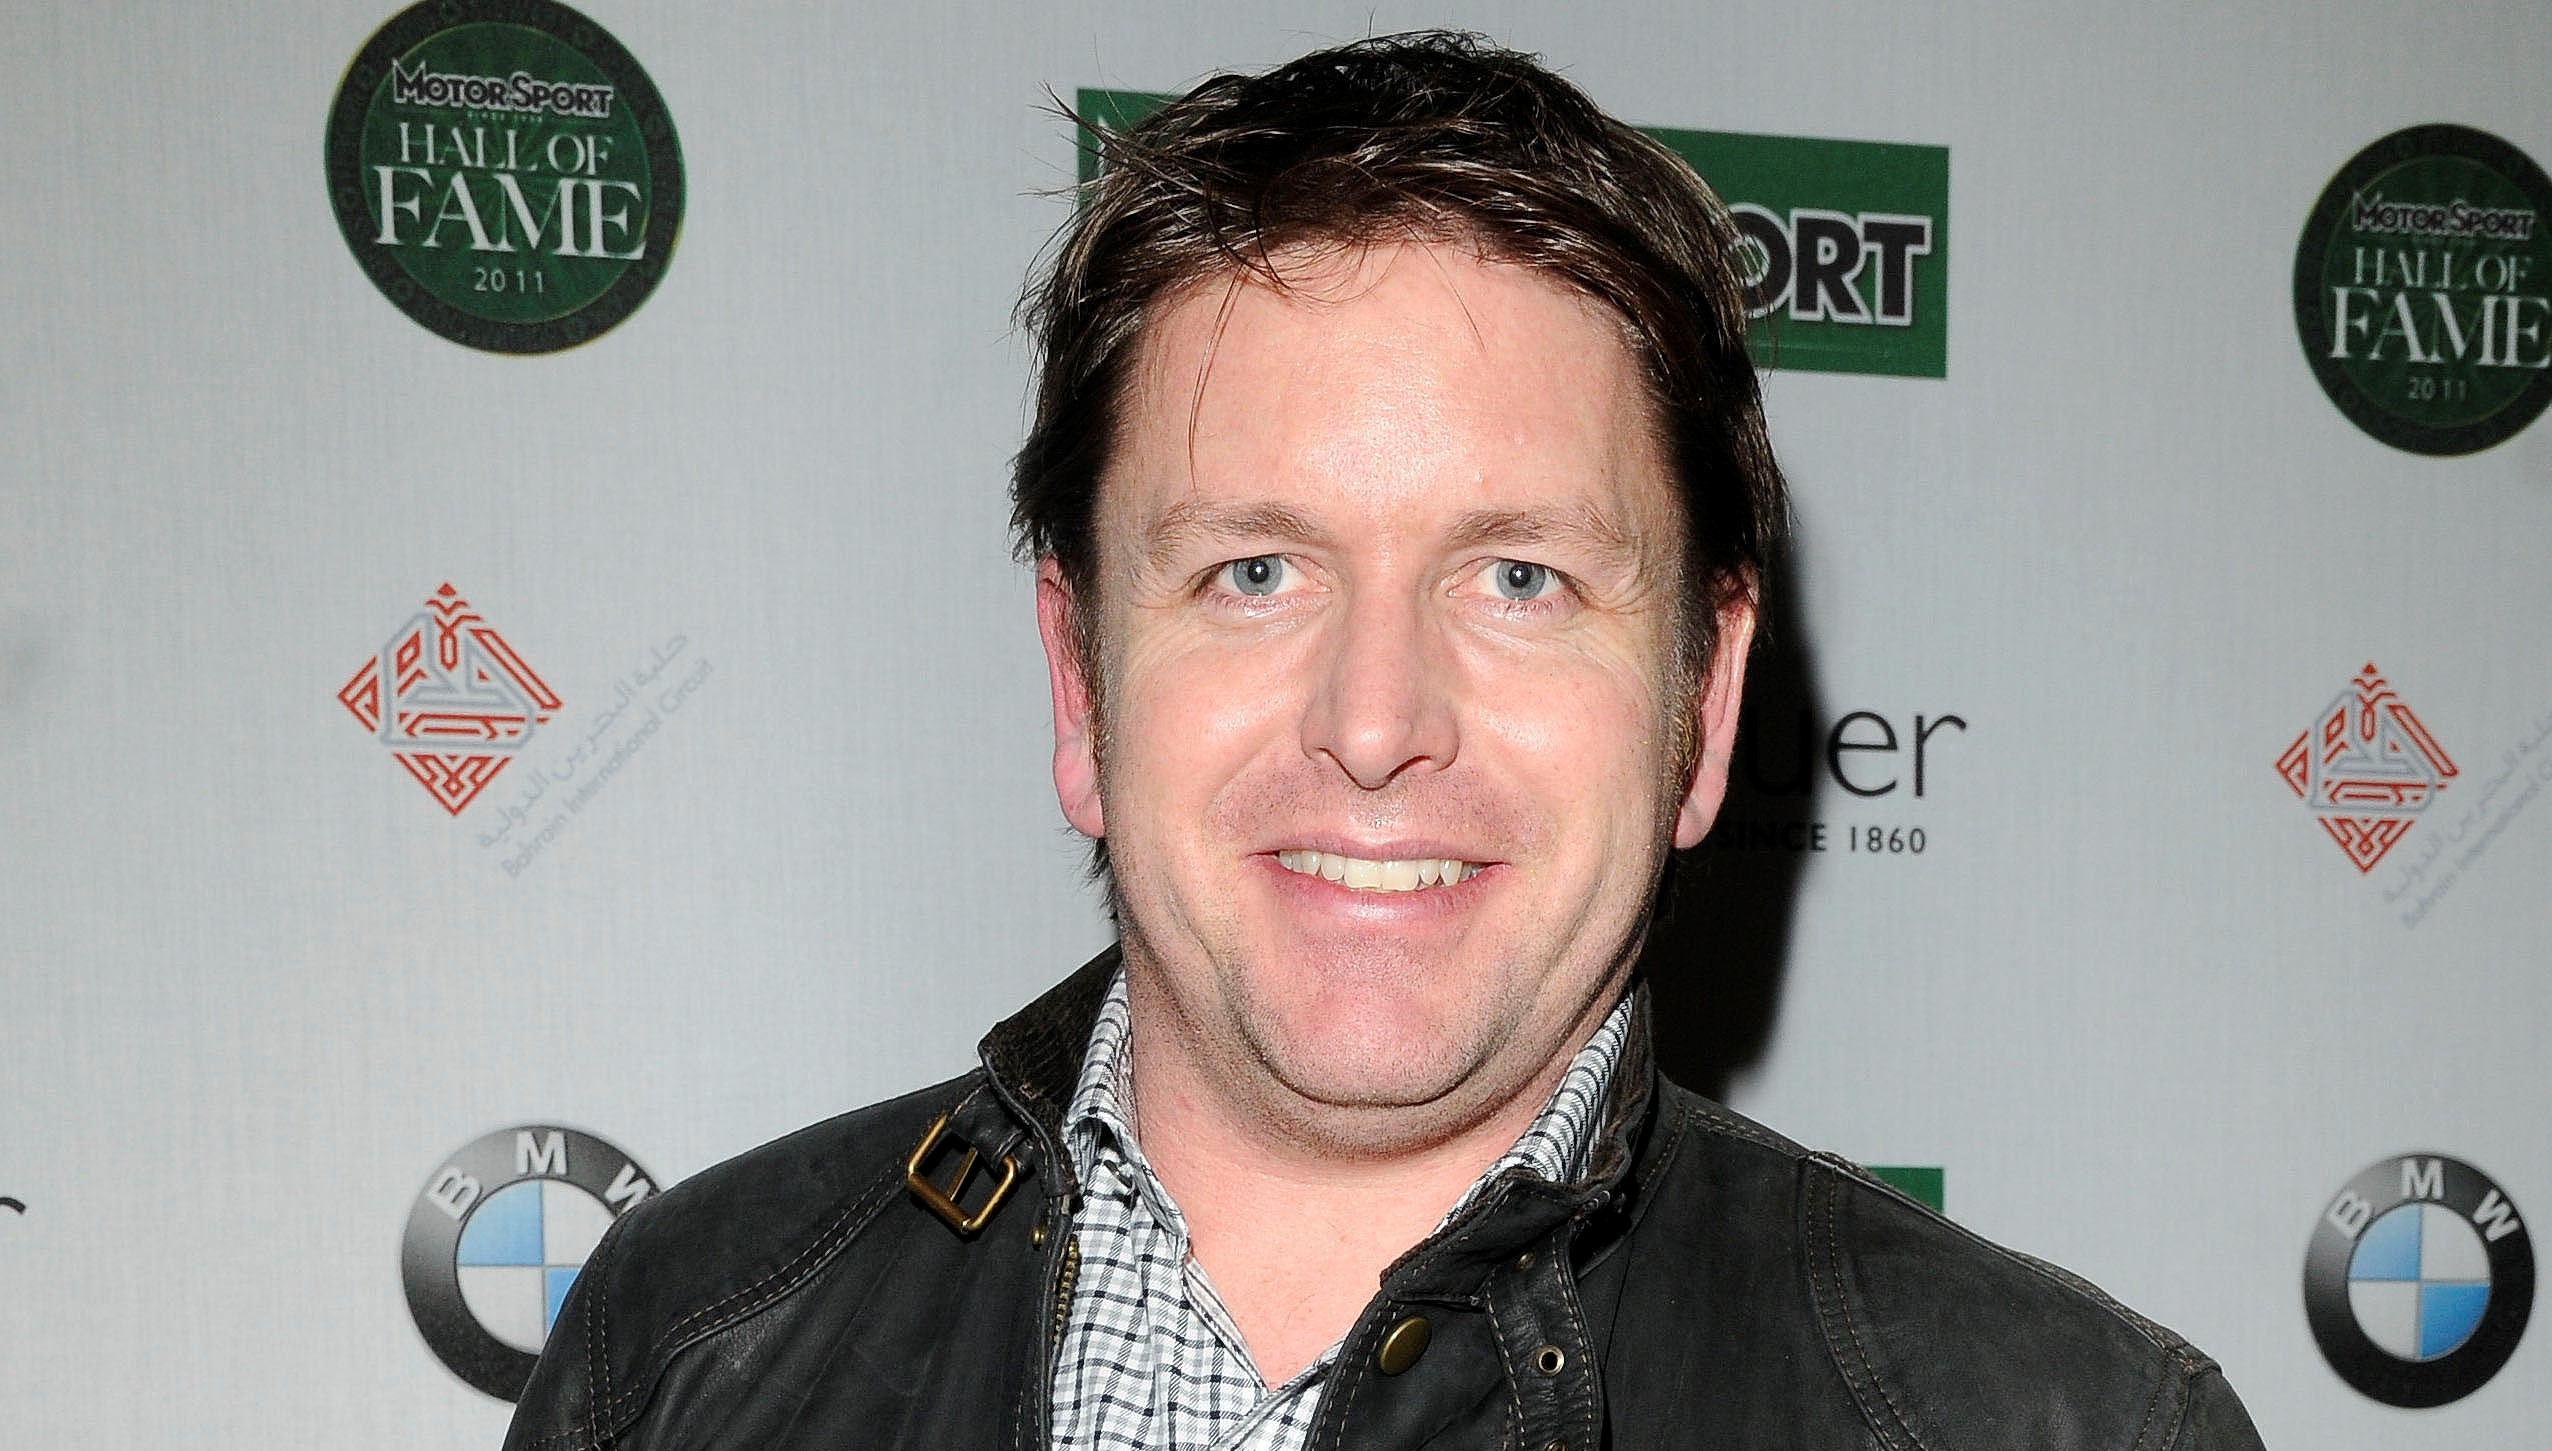 James Martin whips fans into a frenzy with first look at filming new Saturday series